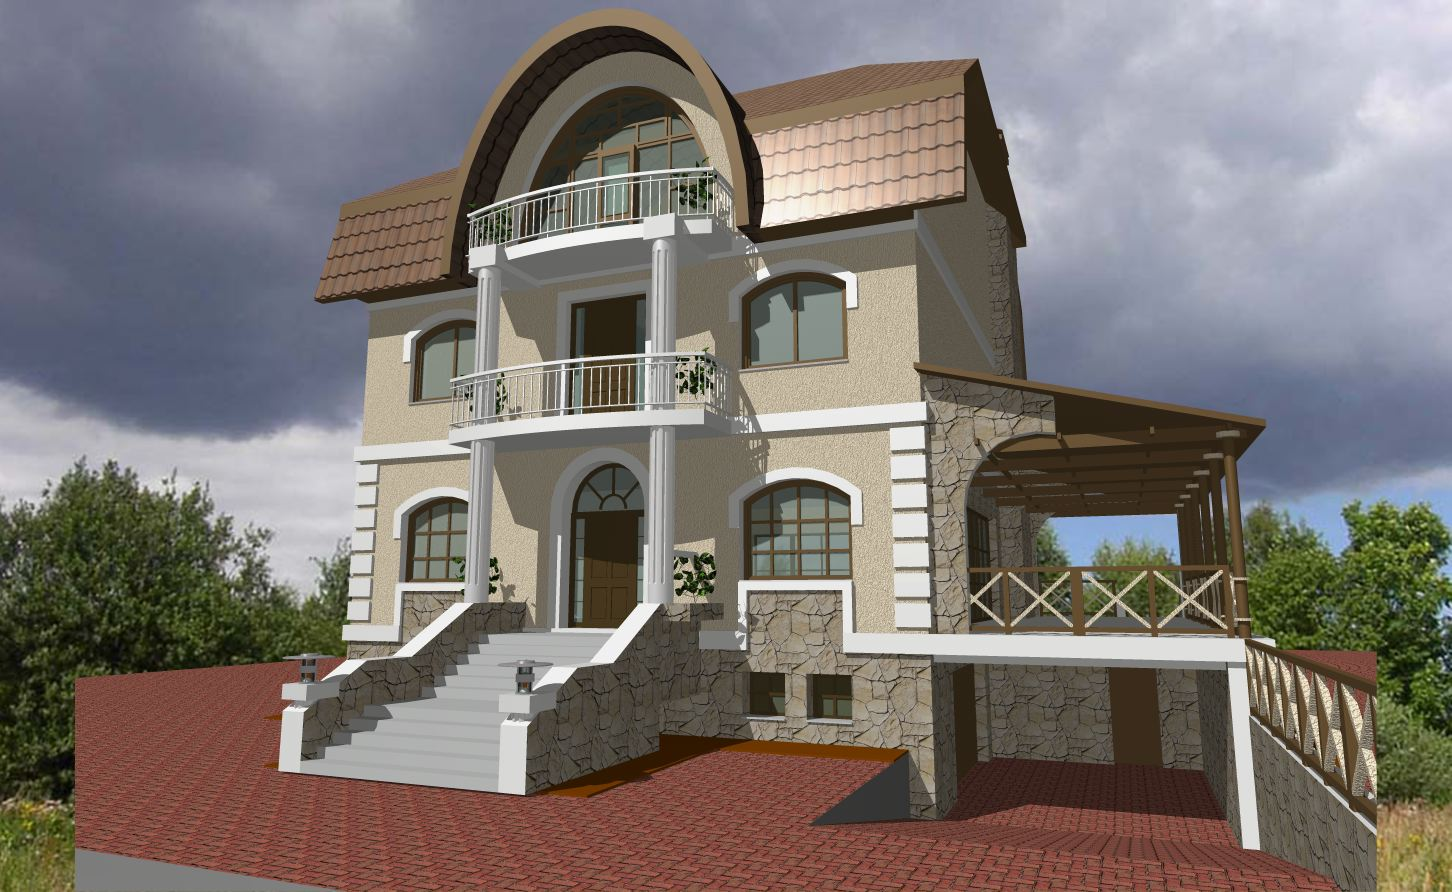 Foundation dezin decor exterior elevations view 39 s for House design pictures exterior